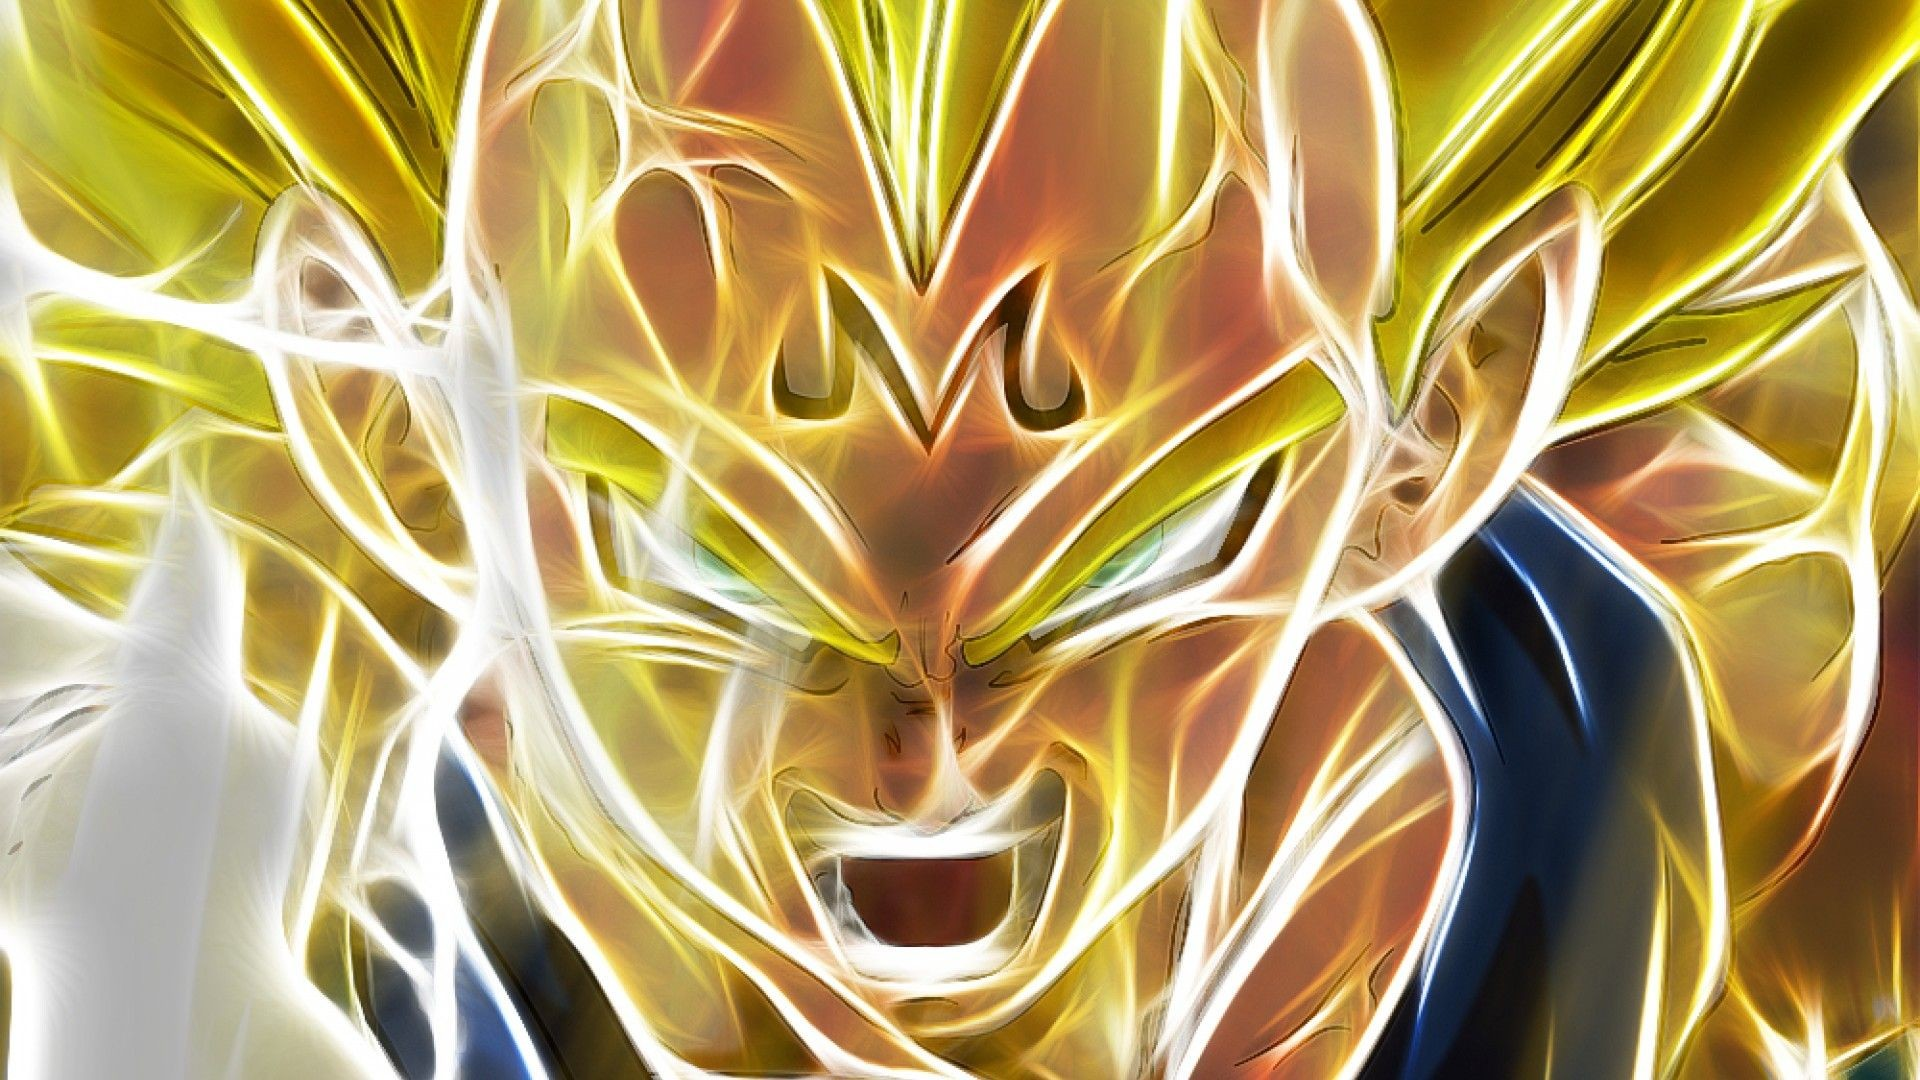 majin vegeta wallpaper hd (76+ images)